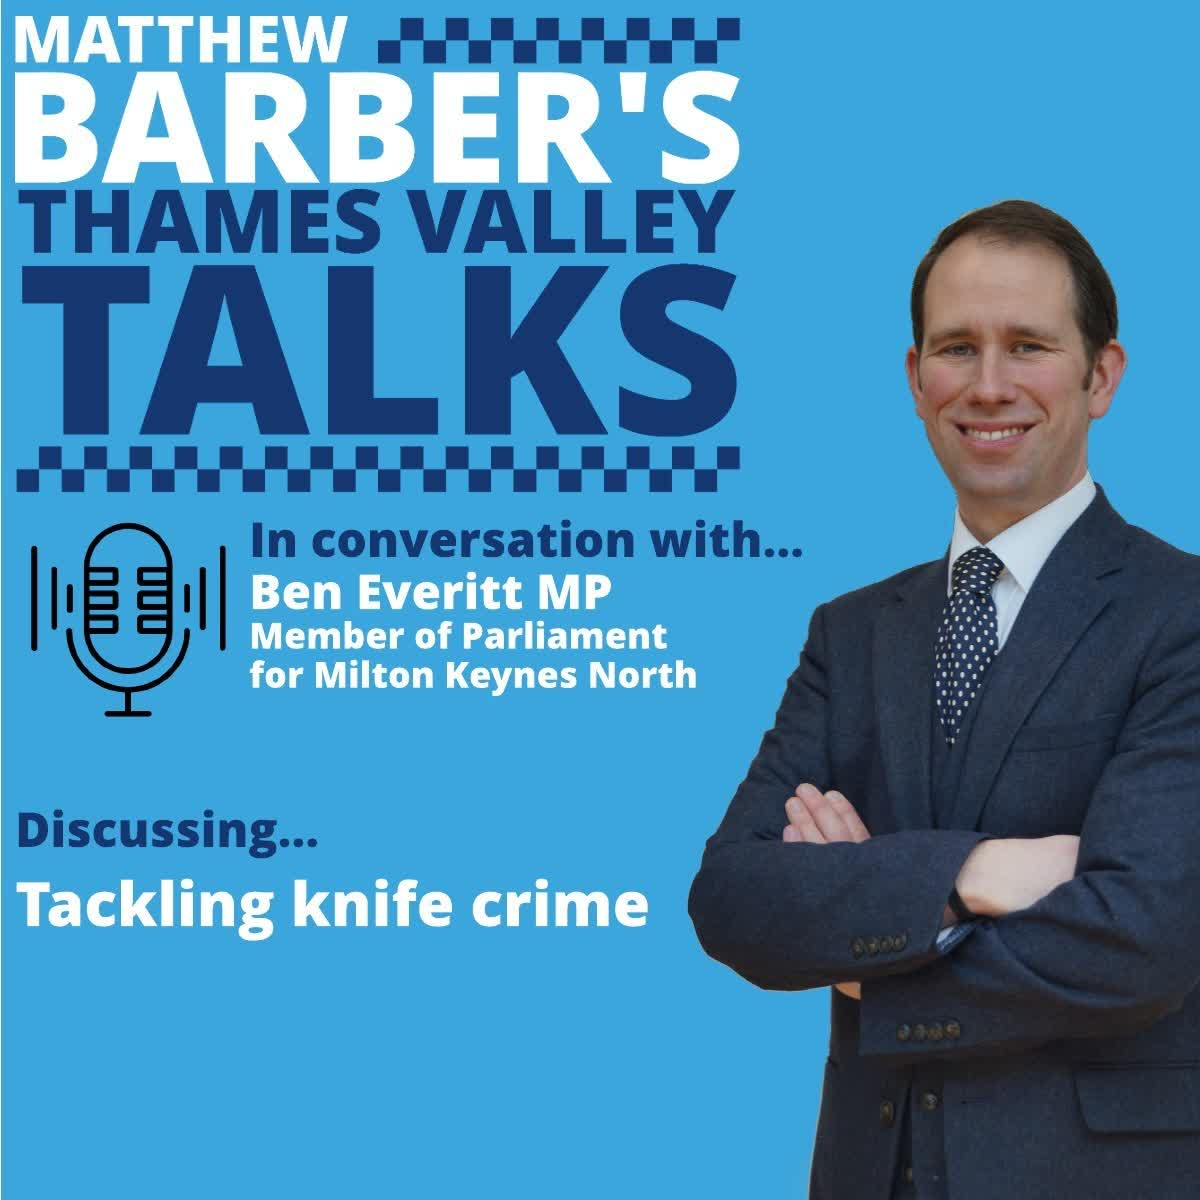 Tackling knife crime - in conversation with Ben Everitt MP